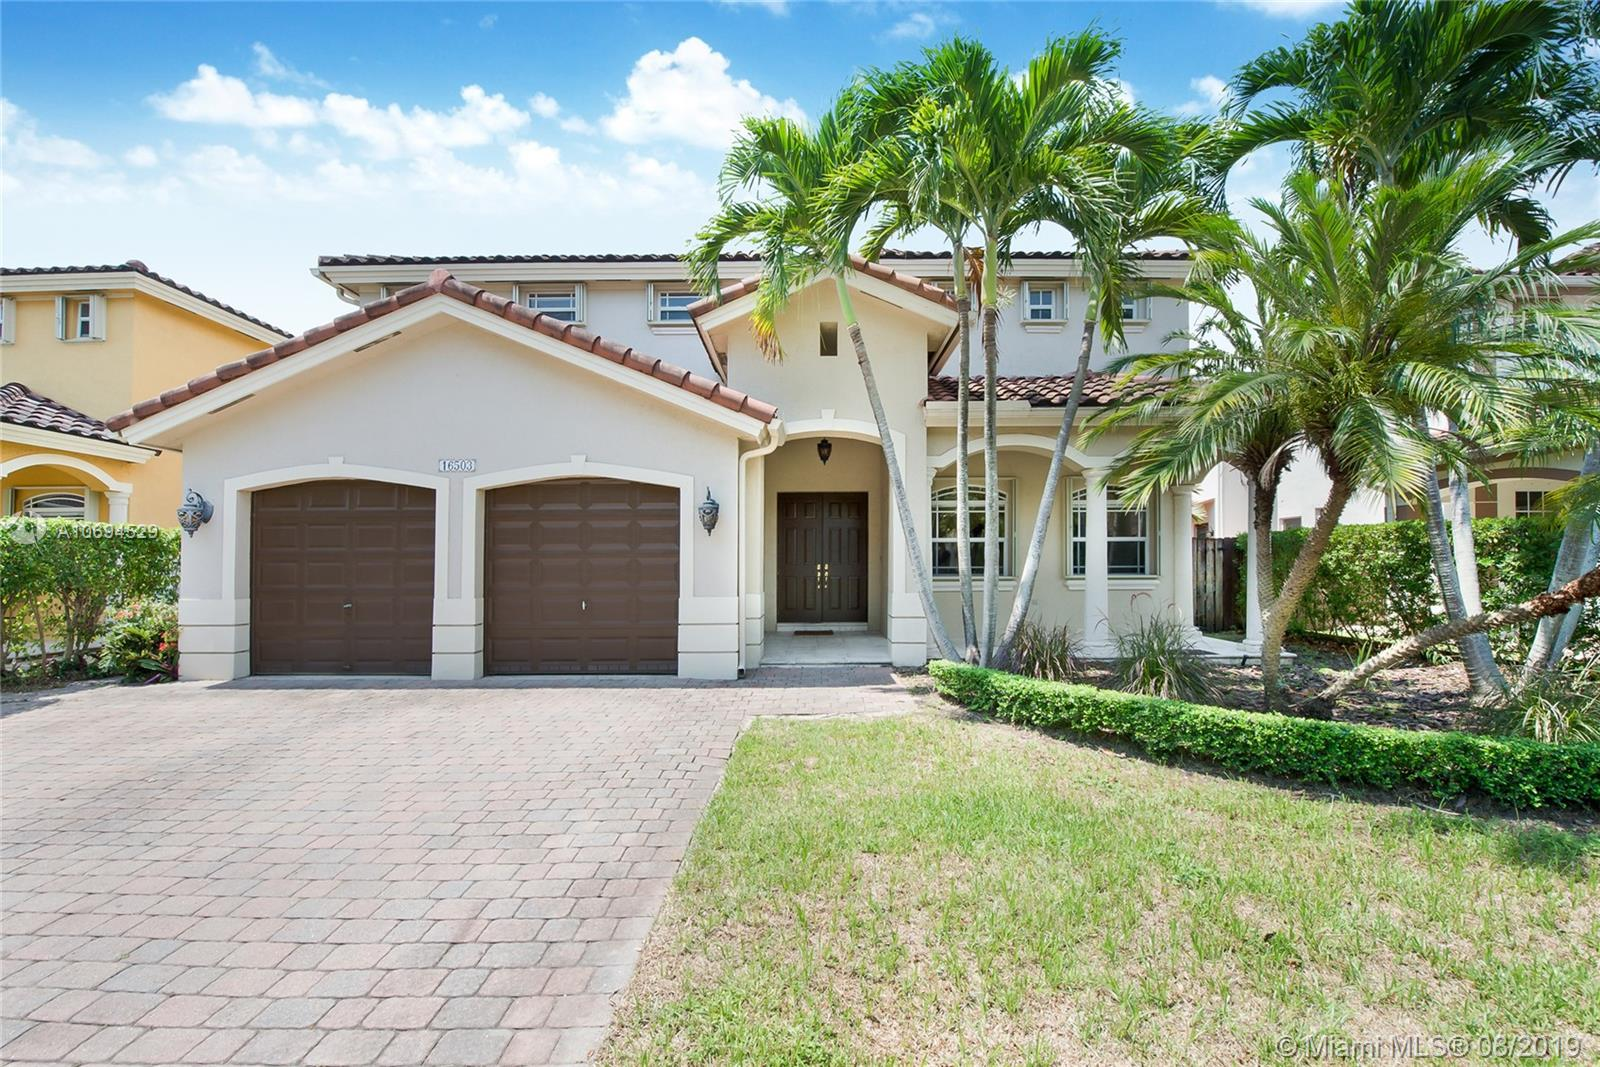 16503 SW 67th Ter, one of homes for sale in Kendall West